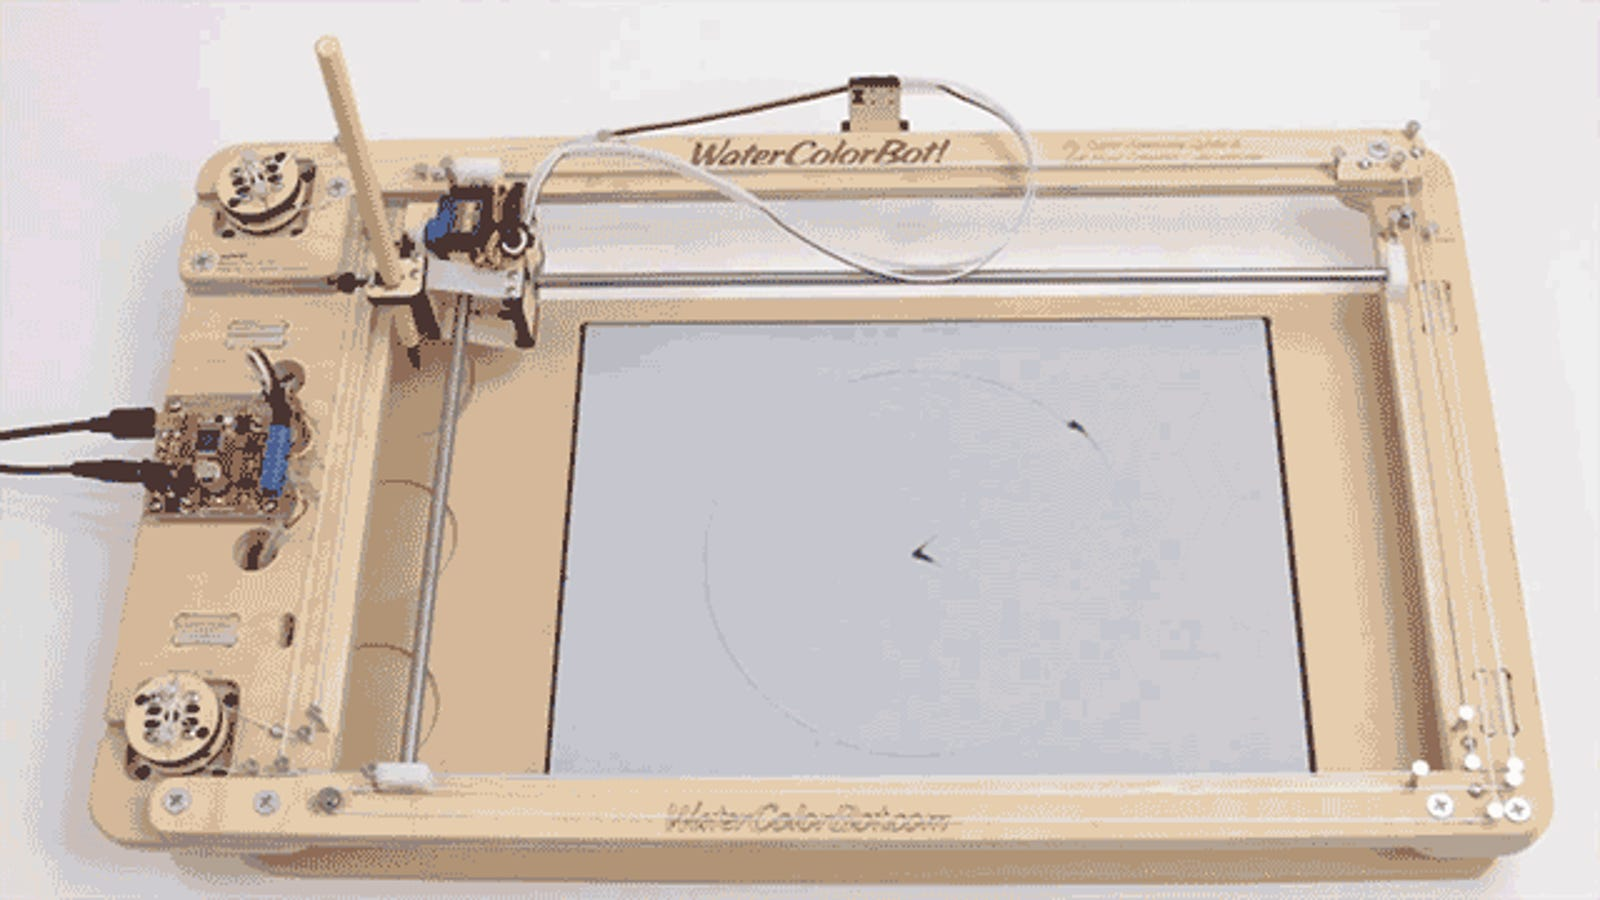 Watch Time Evaporate With a Clock That Paints the Hours In Water